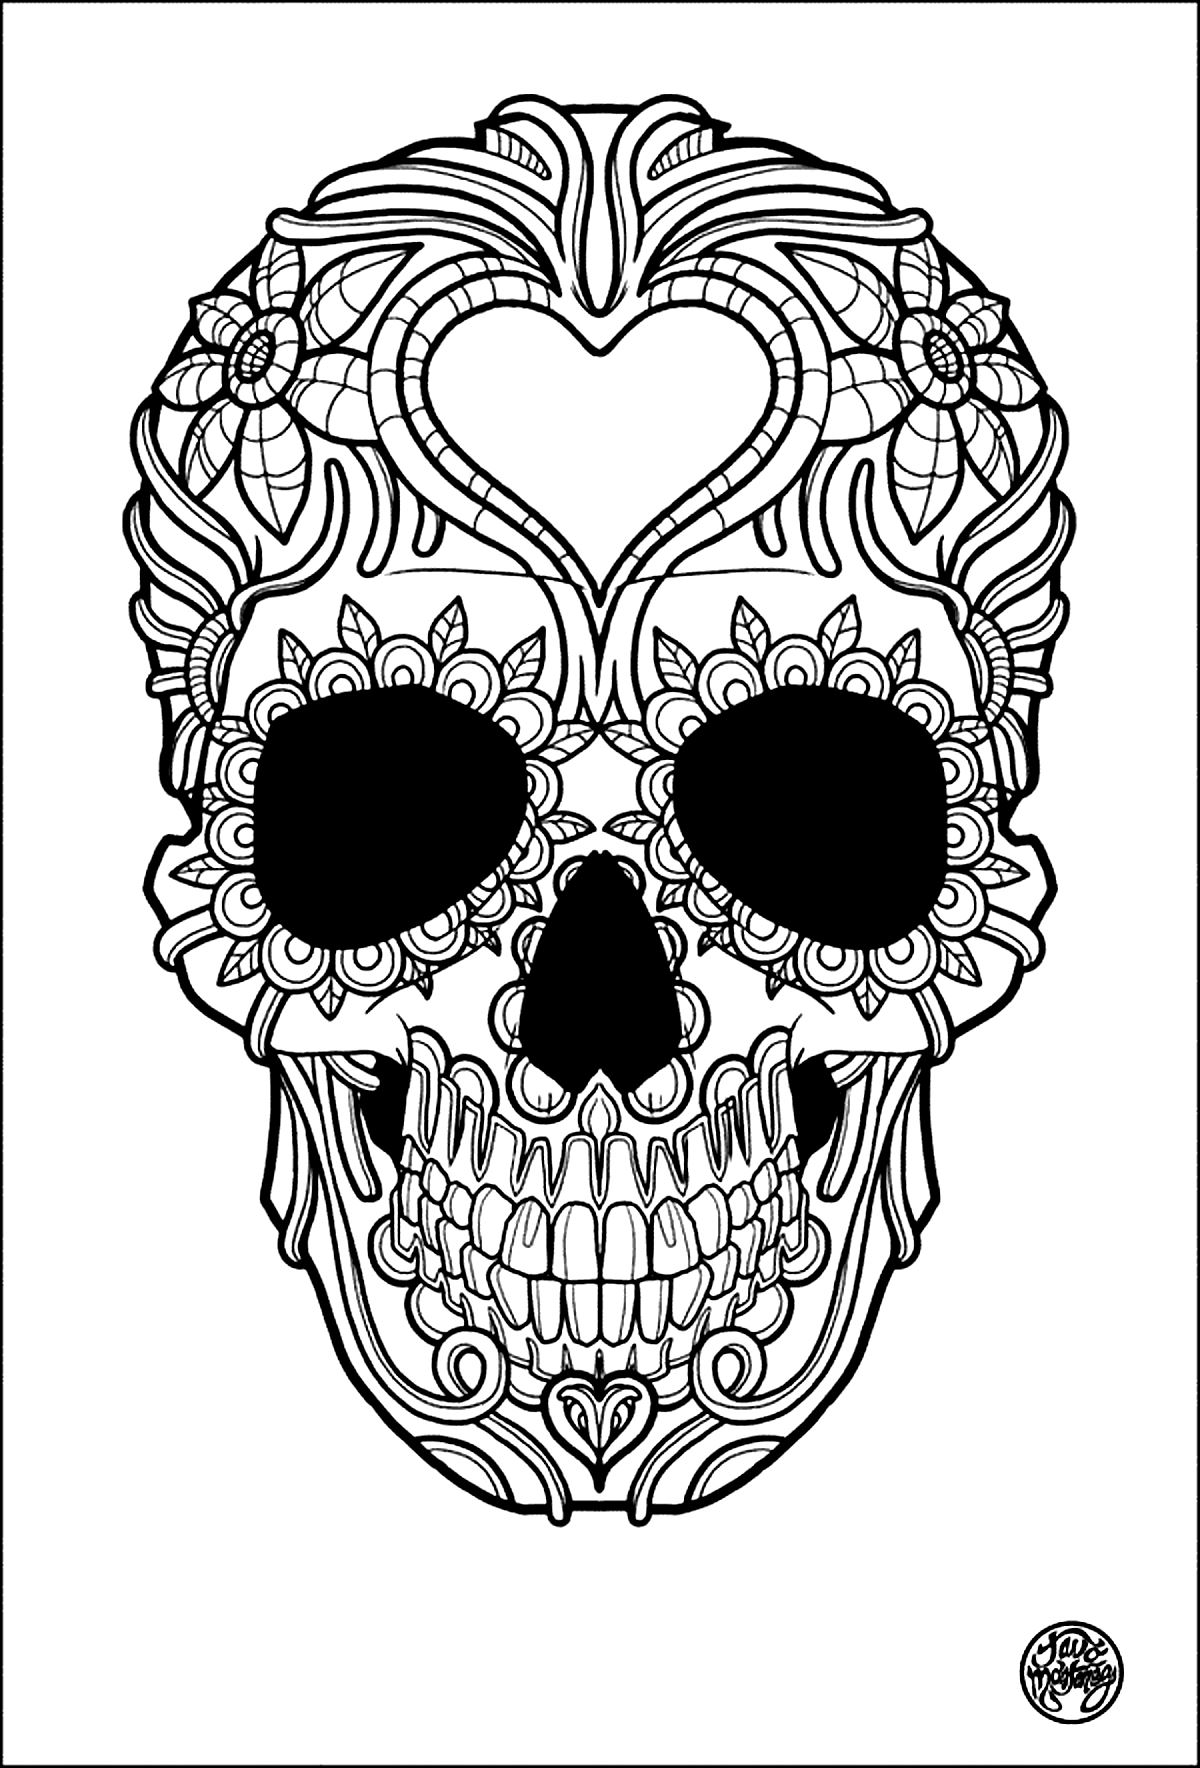 coloring pages of adults free printable abstract coloring pages for adults coloring adults pages of